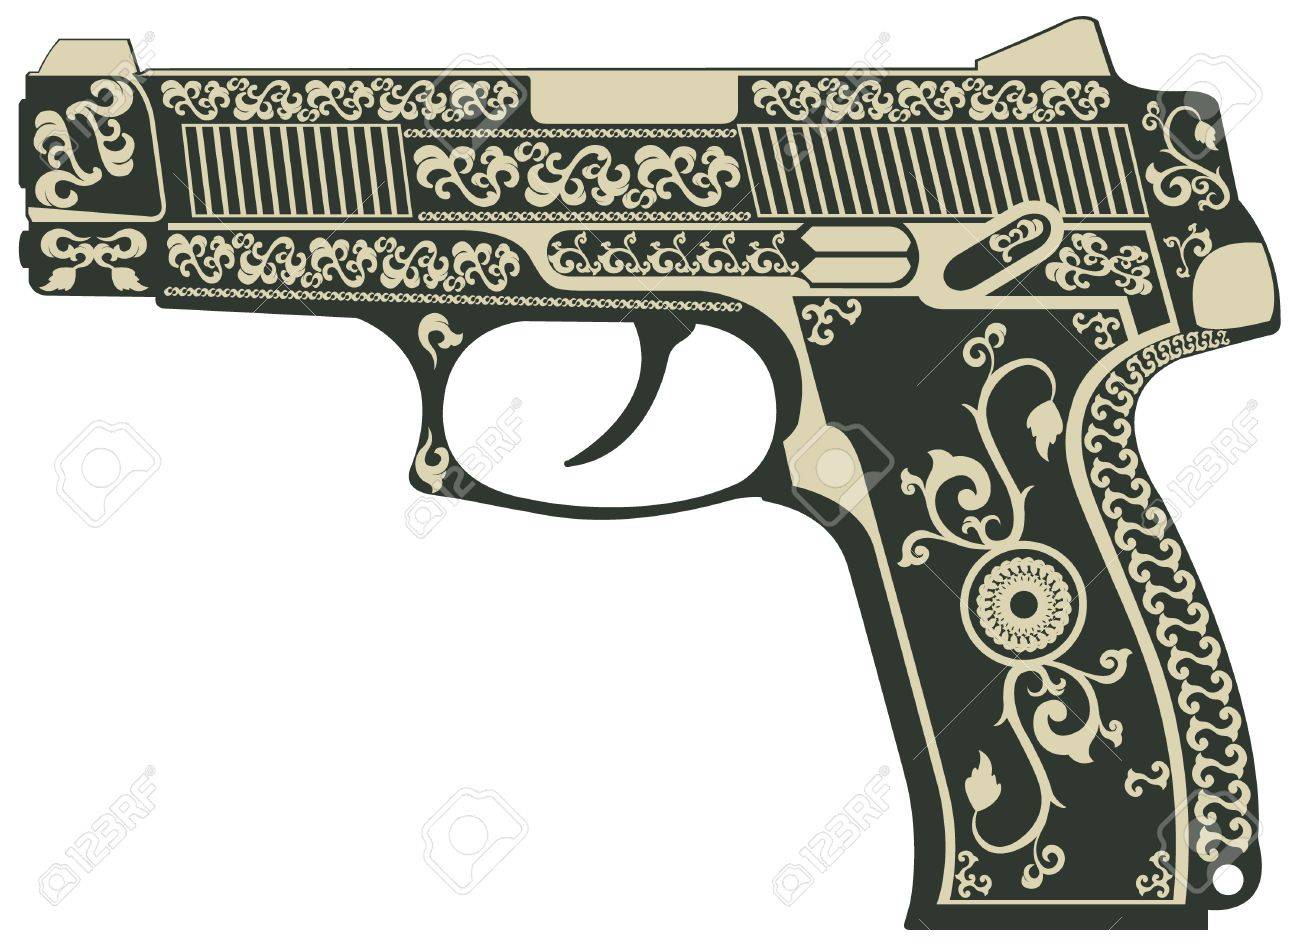 The vector image of Pistol with a pattern Stock Vector - 13995331